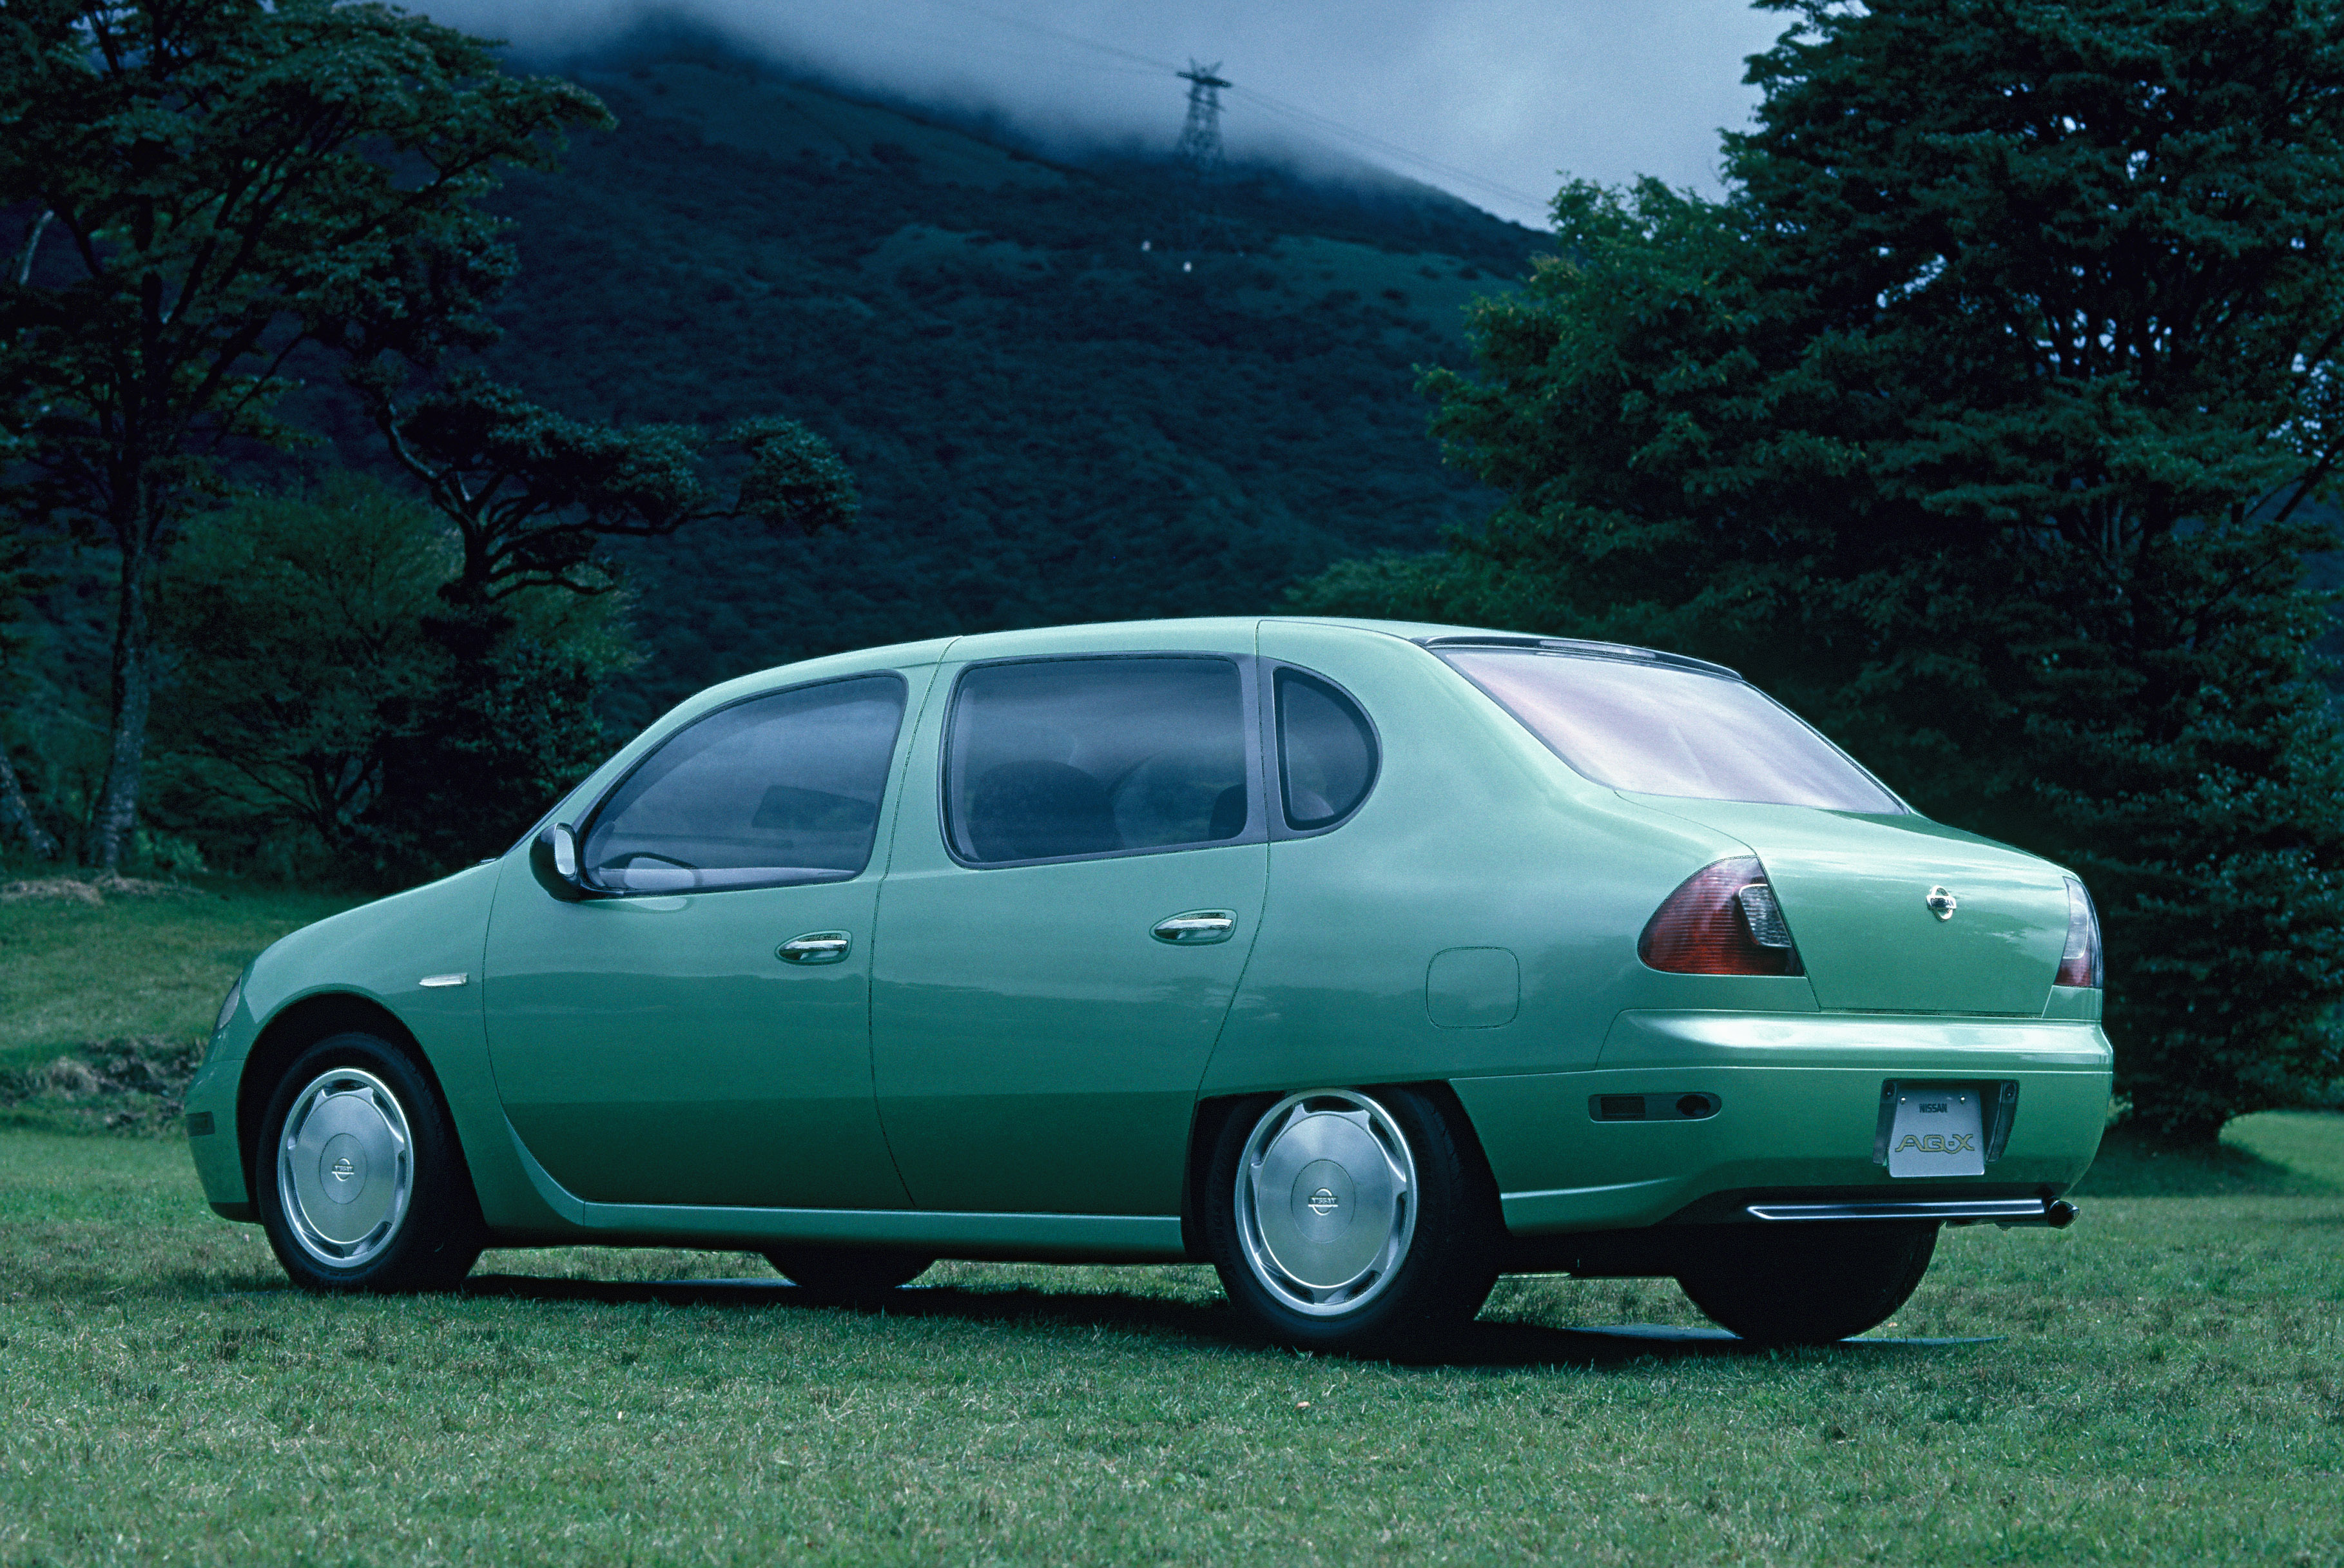 1993 Nissan AQ X: Source